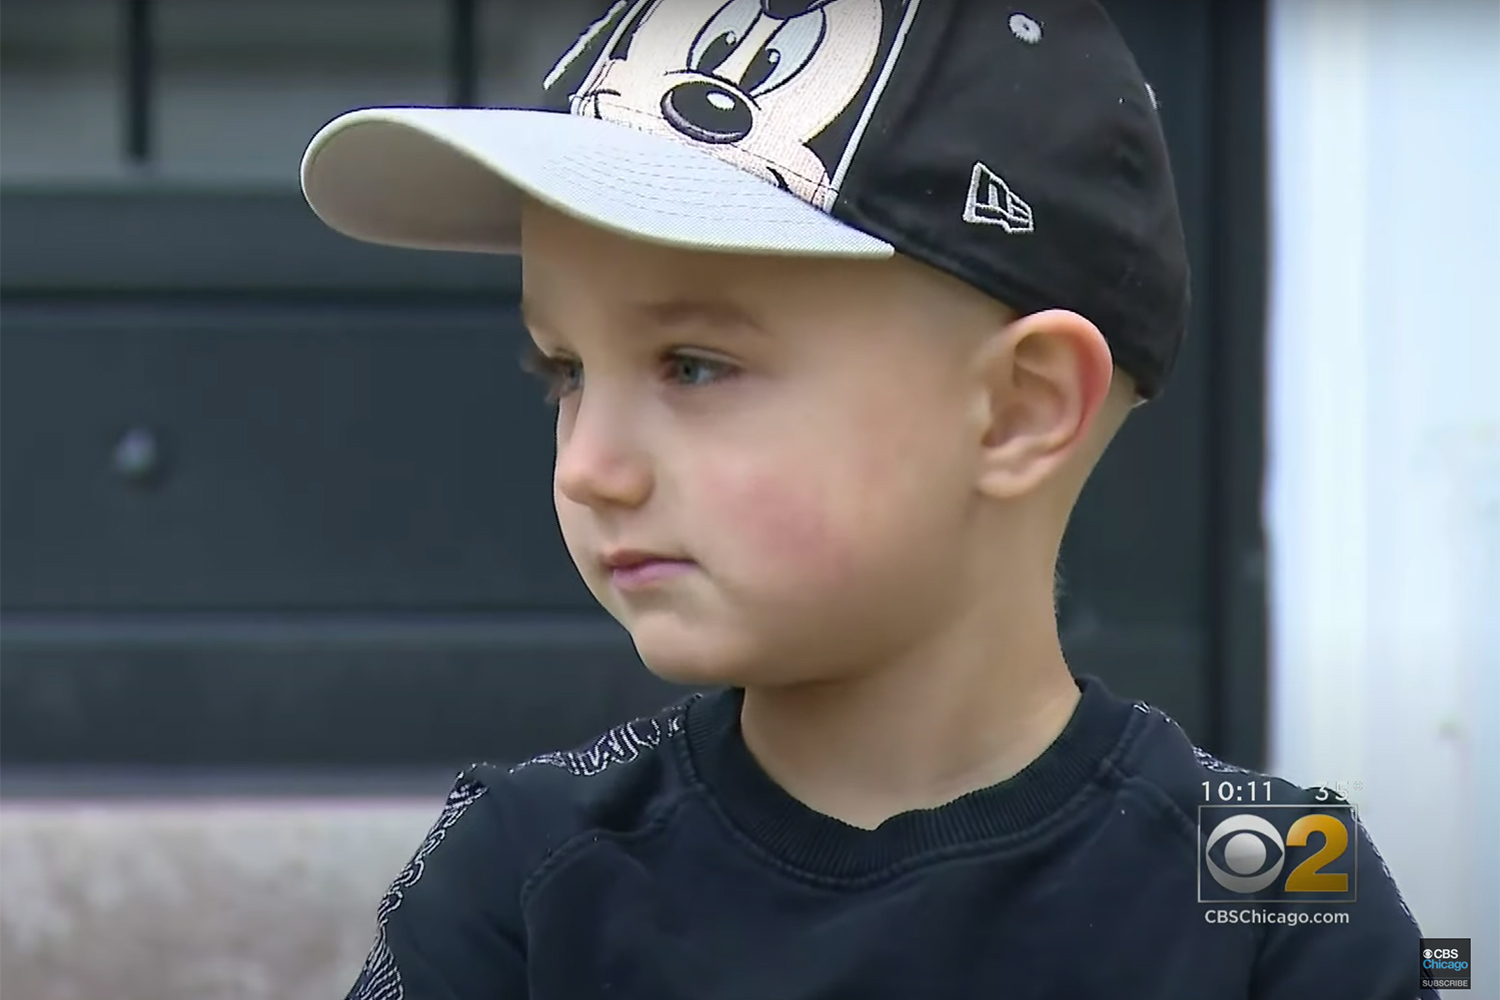 UPS Driver Saves 4-Year-Old Boy After He Becomes Trapped Underneath 97-Lb. Package: 'Our Angel'